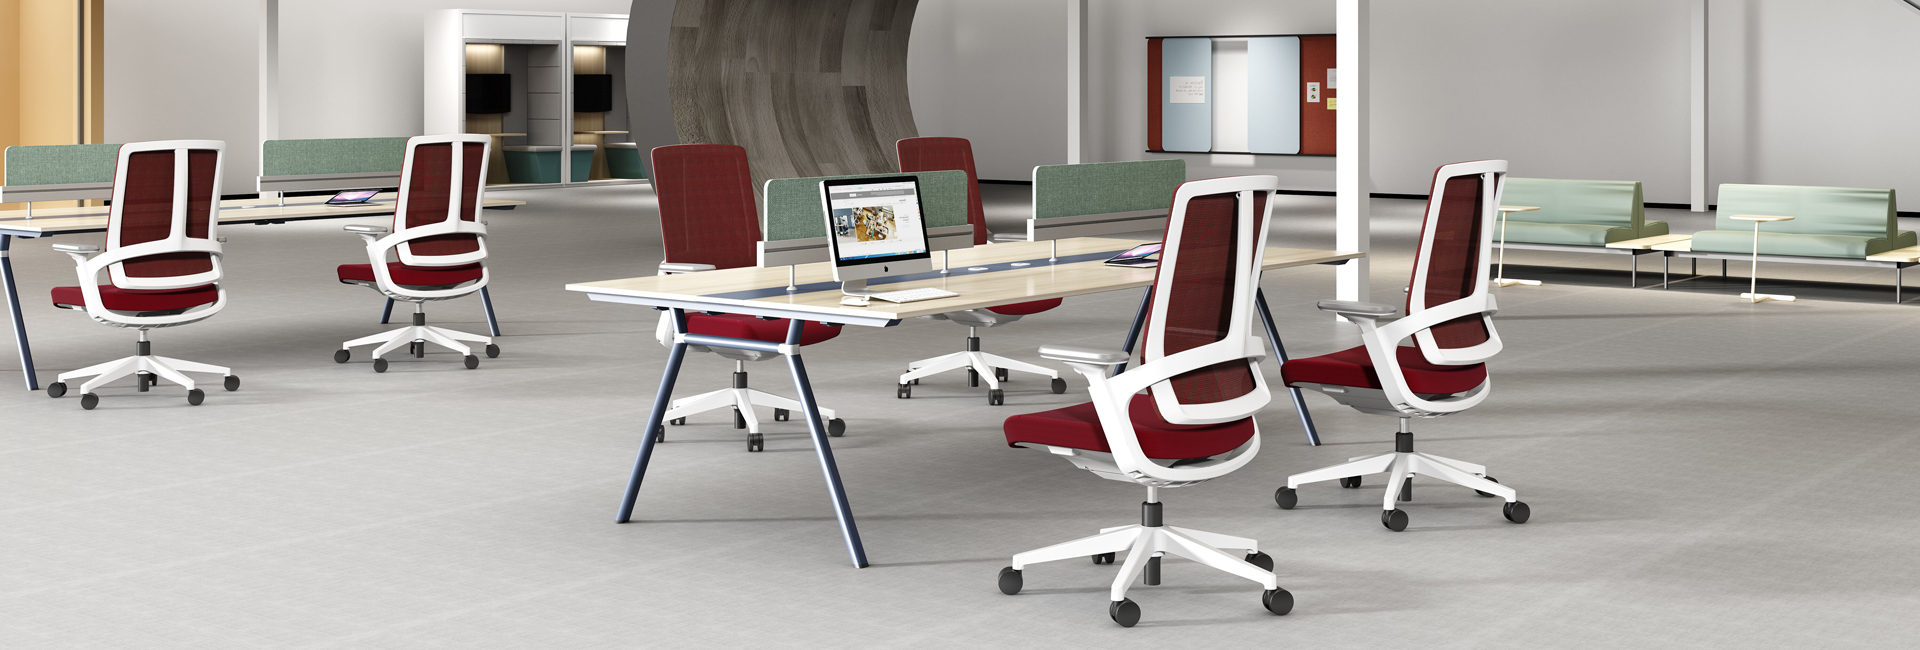 320 office chair